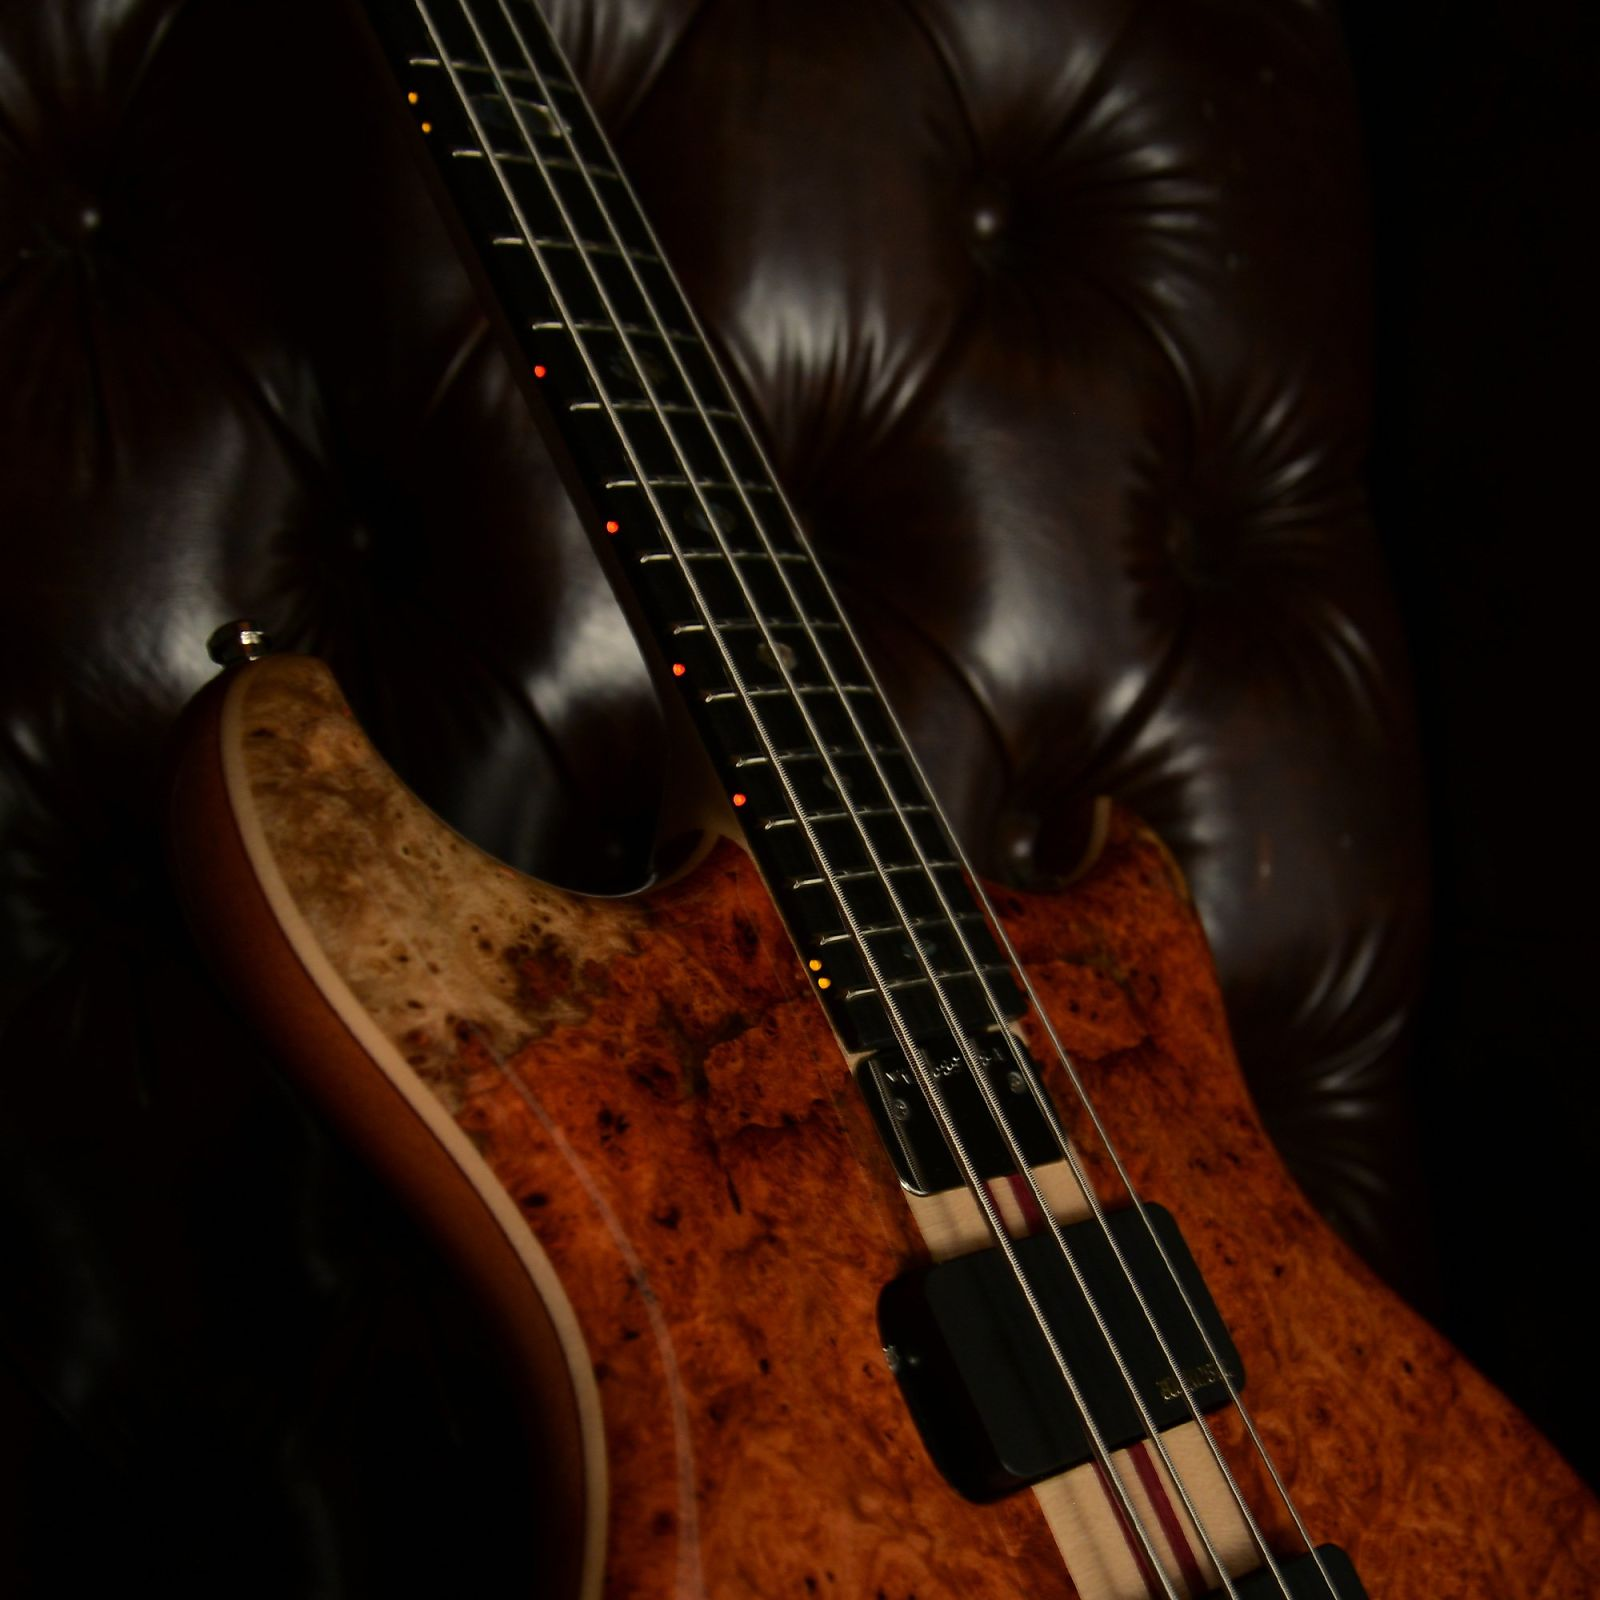 Alembic Mark King Deluxe 4 Amboyna Burl Top/Back (Serial #11133)